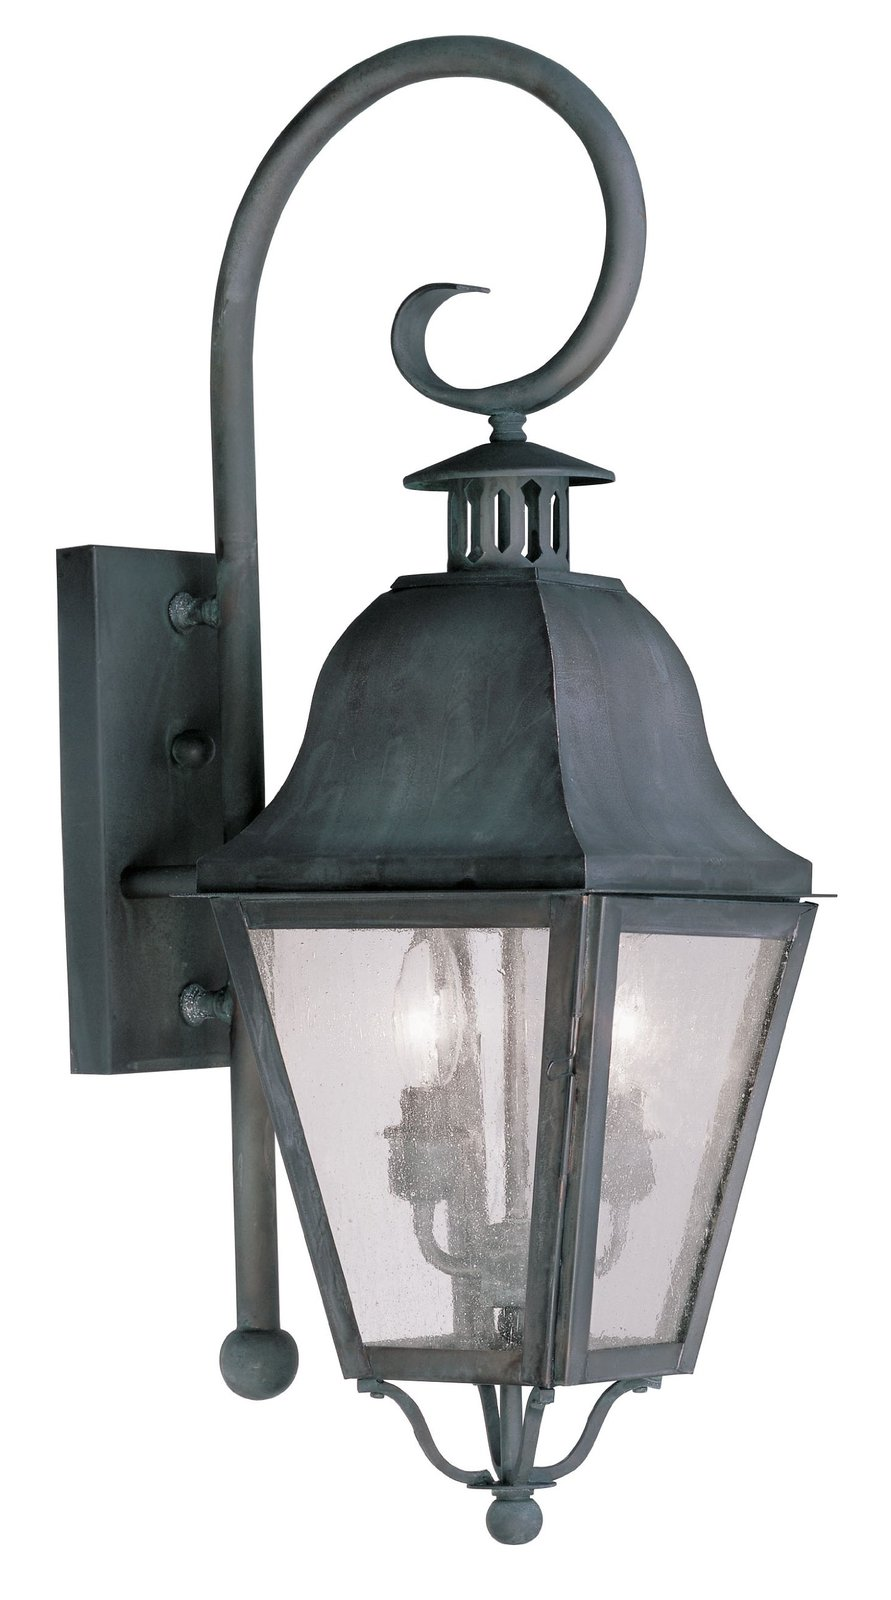 Outdoor Wall Light Hanover Lantern for sale 26 used ads